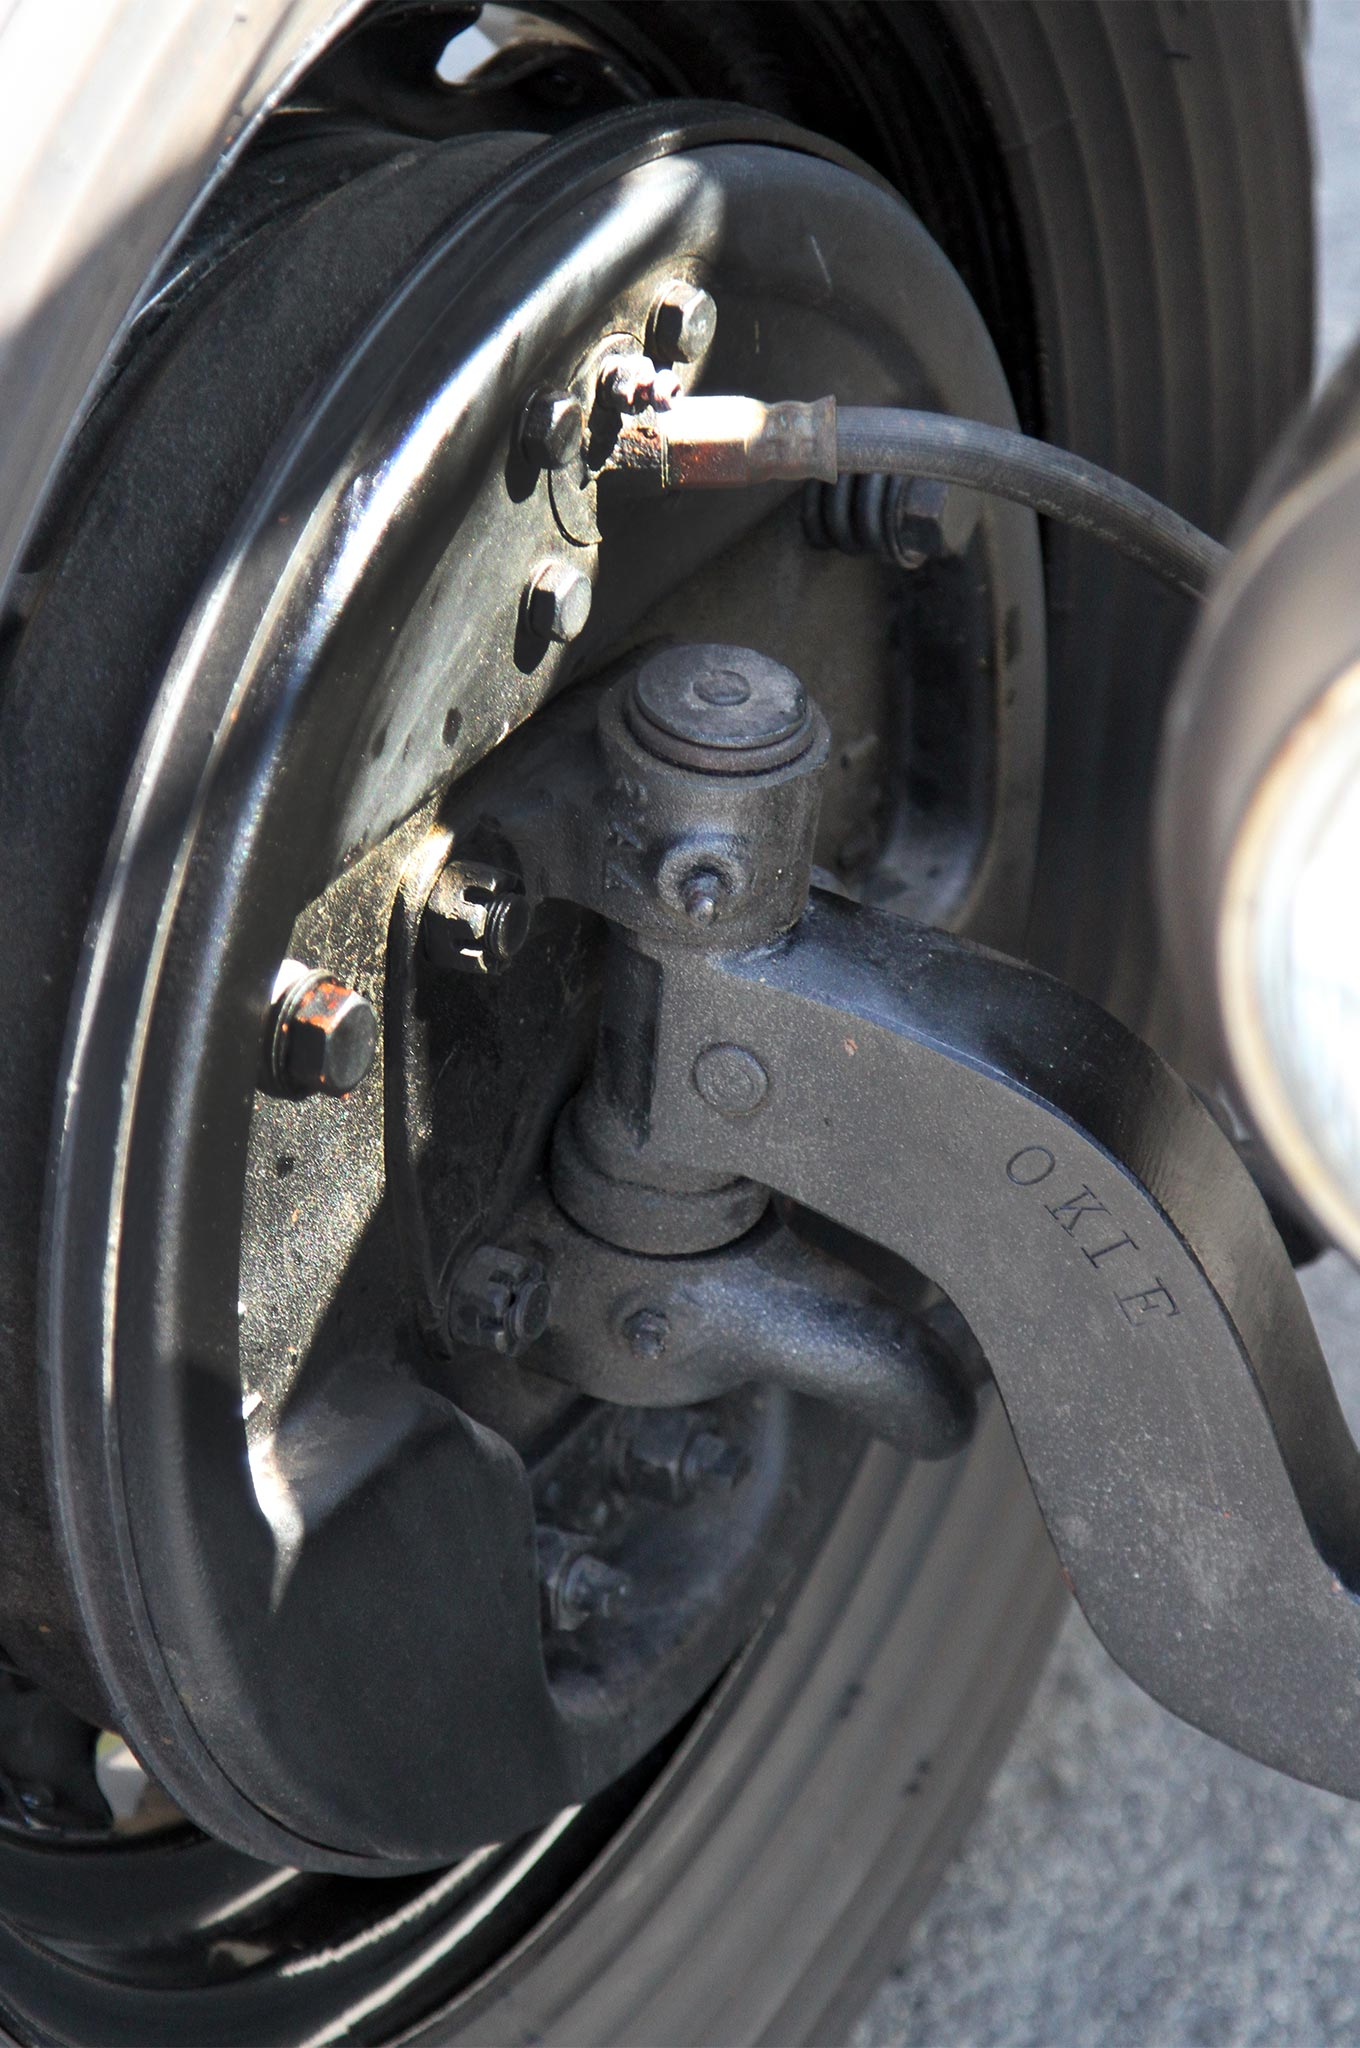 """The front axle for the '34 is a very rare Okie Adams drop axle. Carl """"Okie"""" Adams worked for Blair's Speed Shop, where he would drop his axles. Most of the axles he dropped were stamped with """"Okie"""" in them, like this one. However, some without the stamping have surfaced as well."""